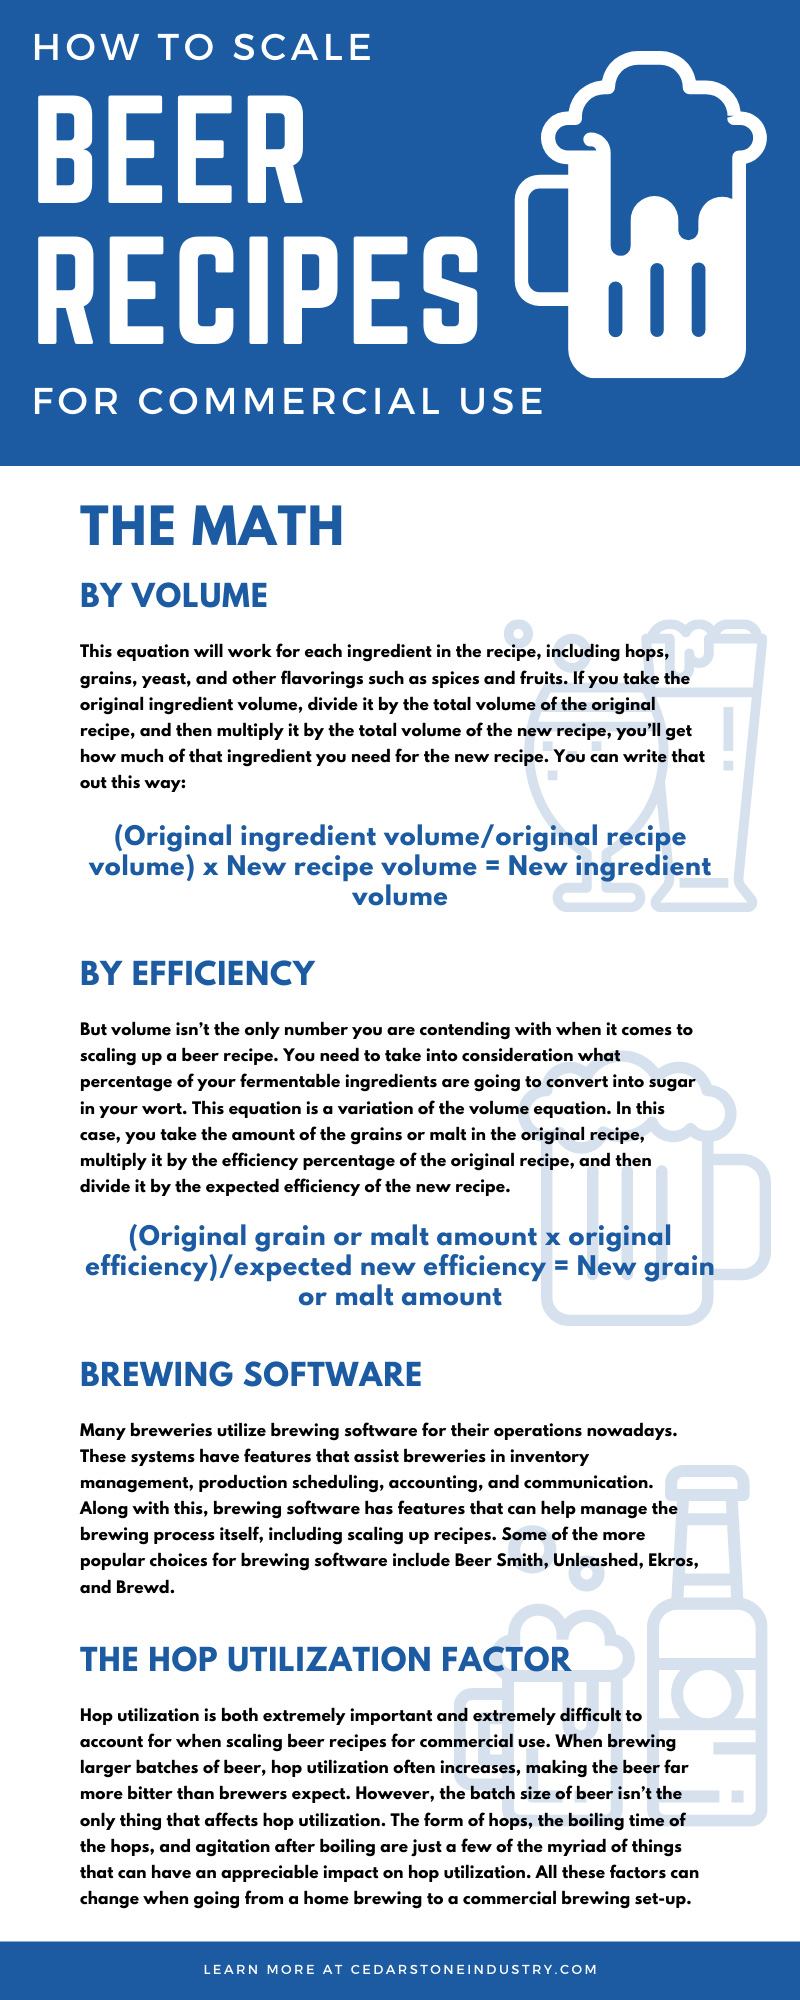 How To Scale Beer Recipes for Commercial Use